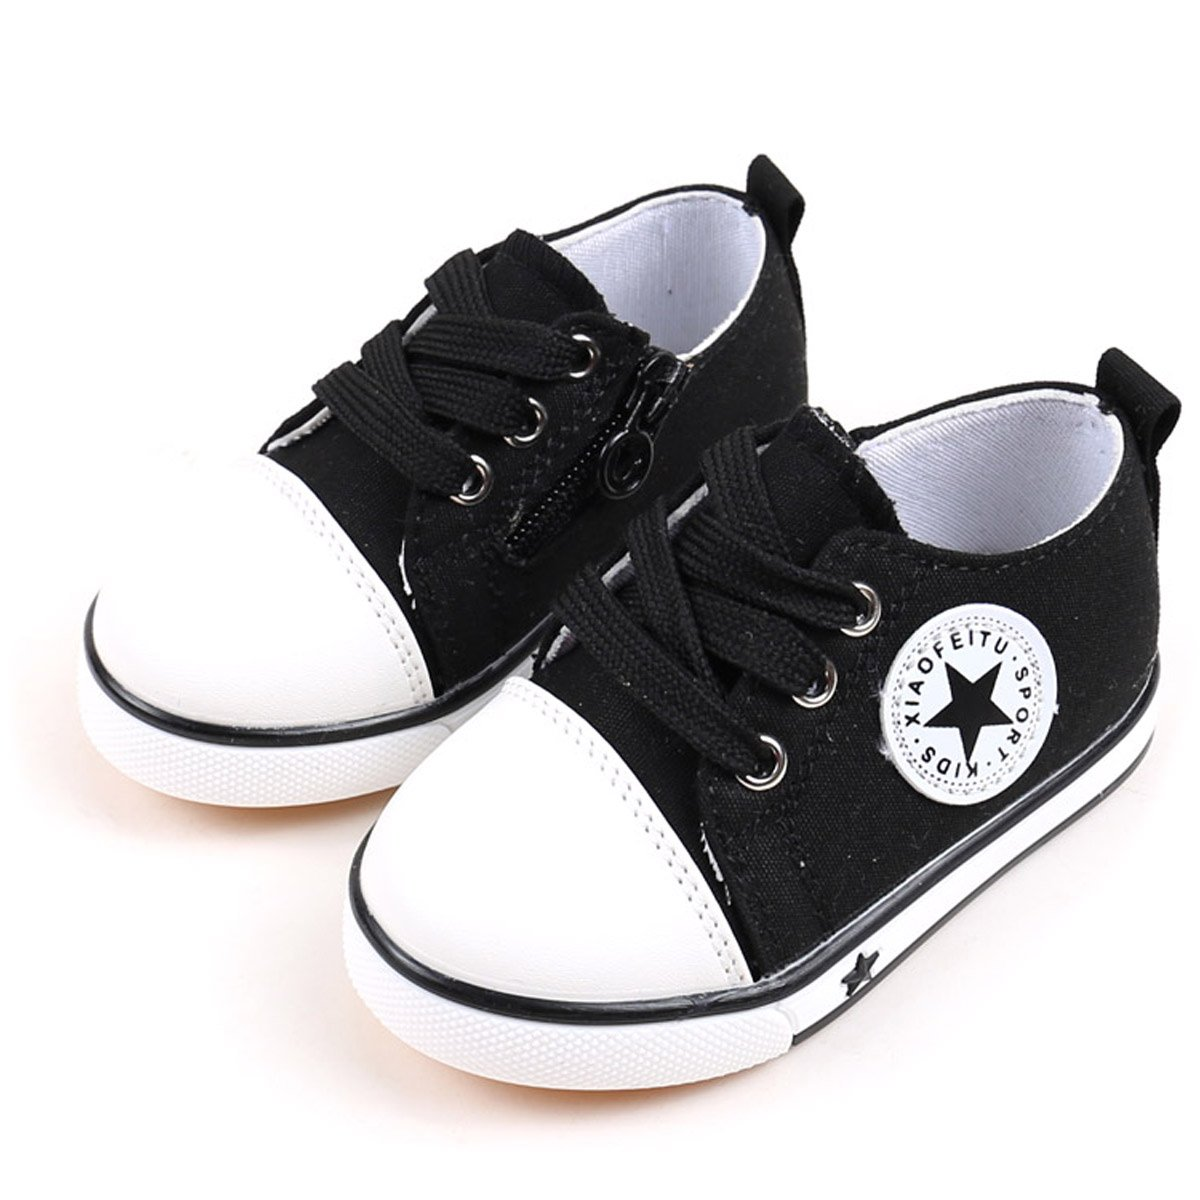 Tutoo Unisex Baby Boys Girls Shoes Kids Canvas Toddler Child Soft Sole Fashion Sneakers … (5 M U.S Toddler, A-Black)